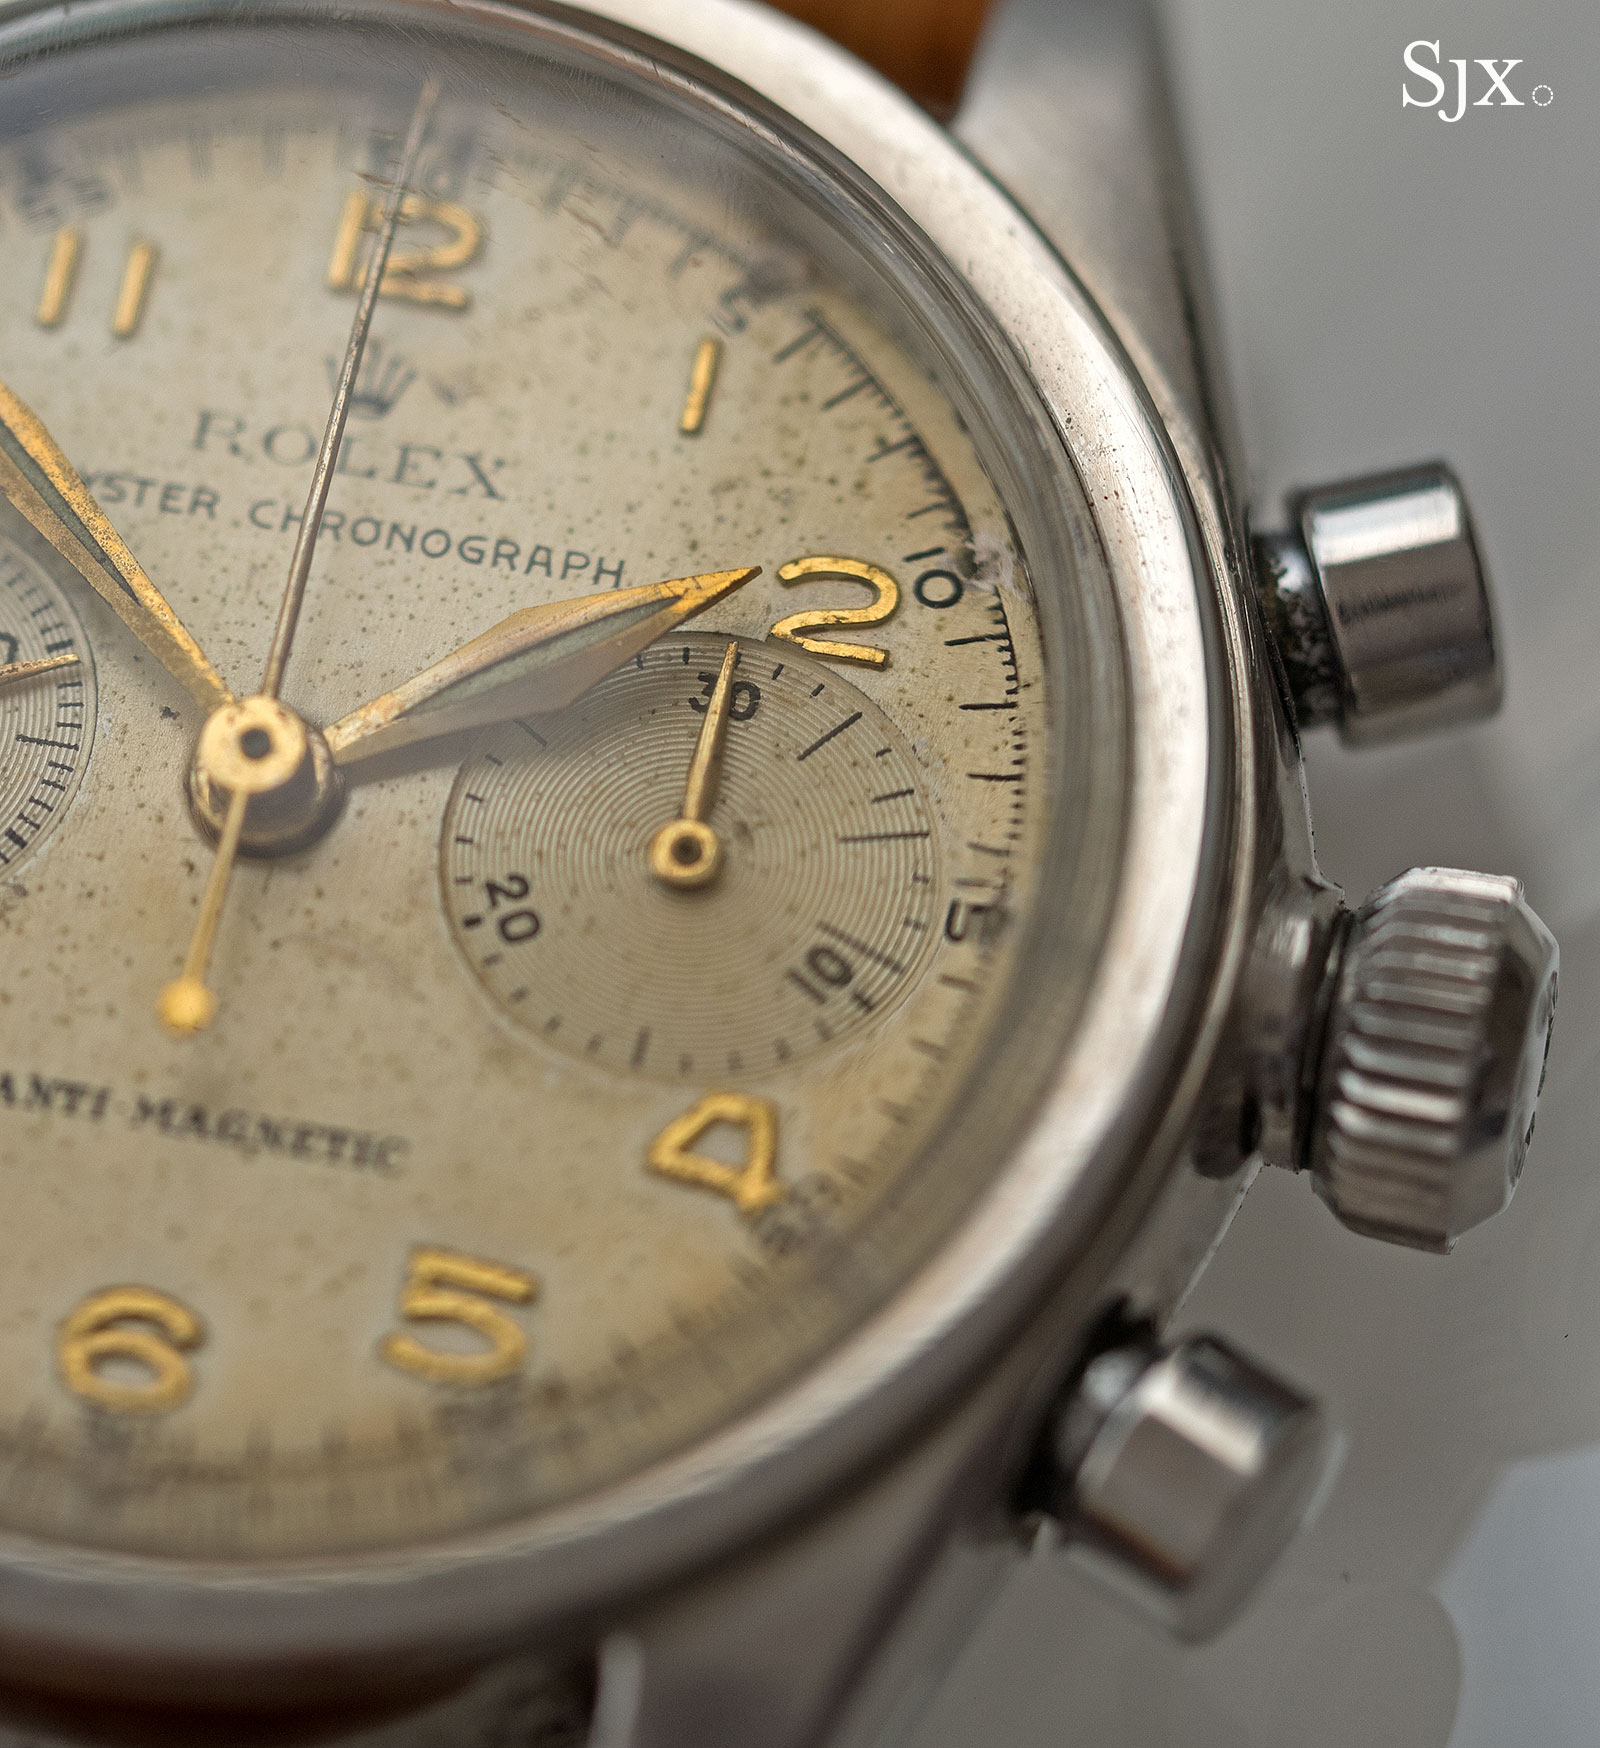 Rolex 3481 chronograph anti-magnetic 7